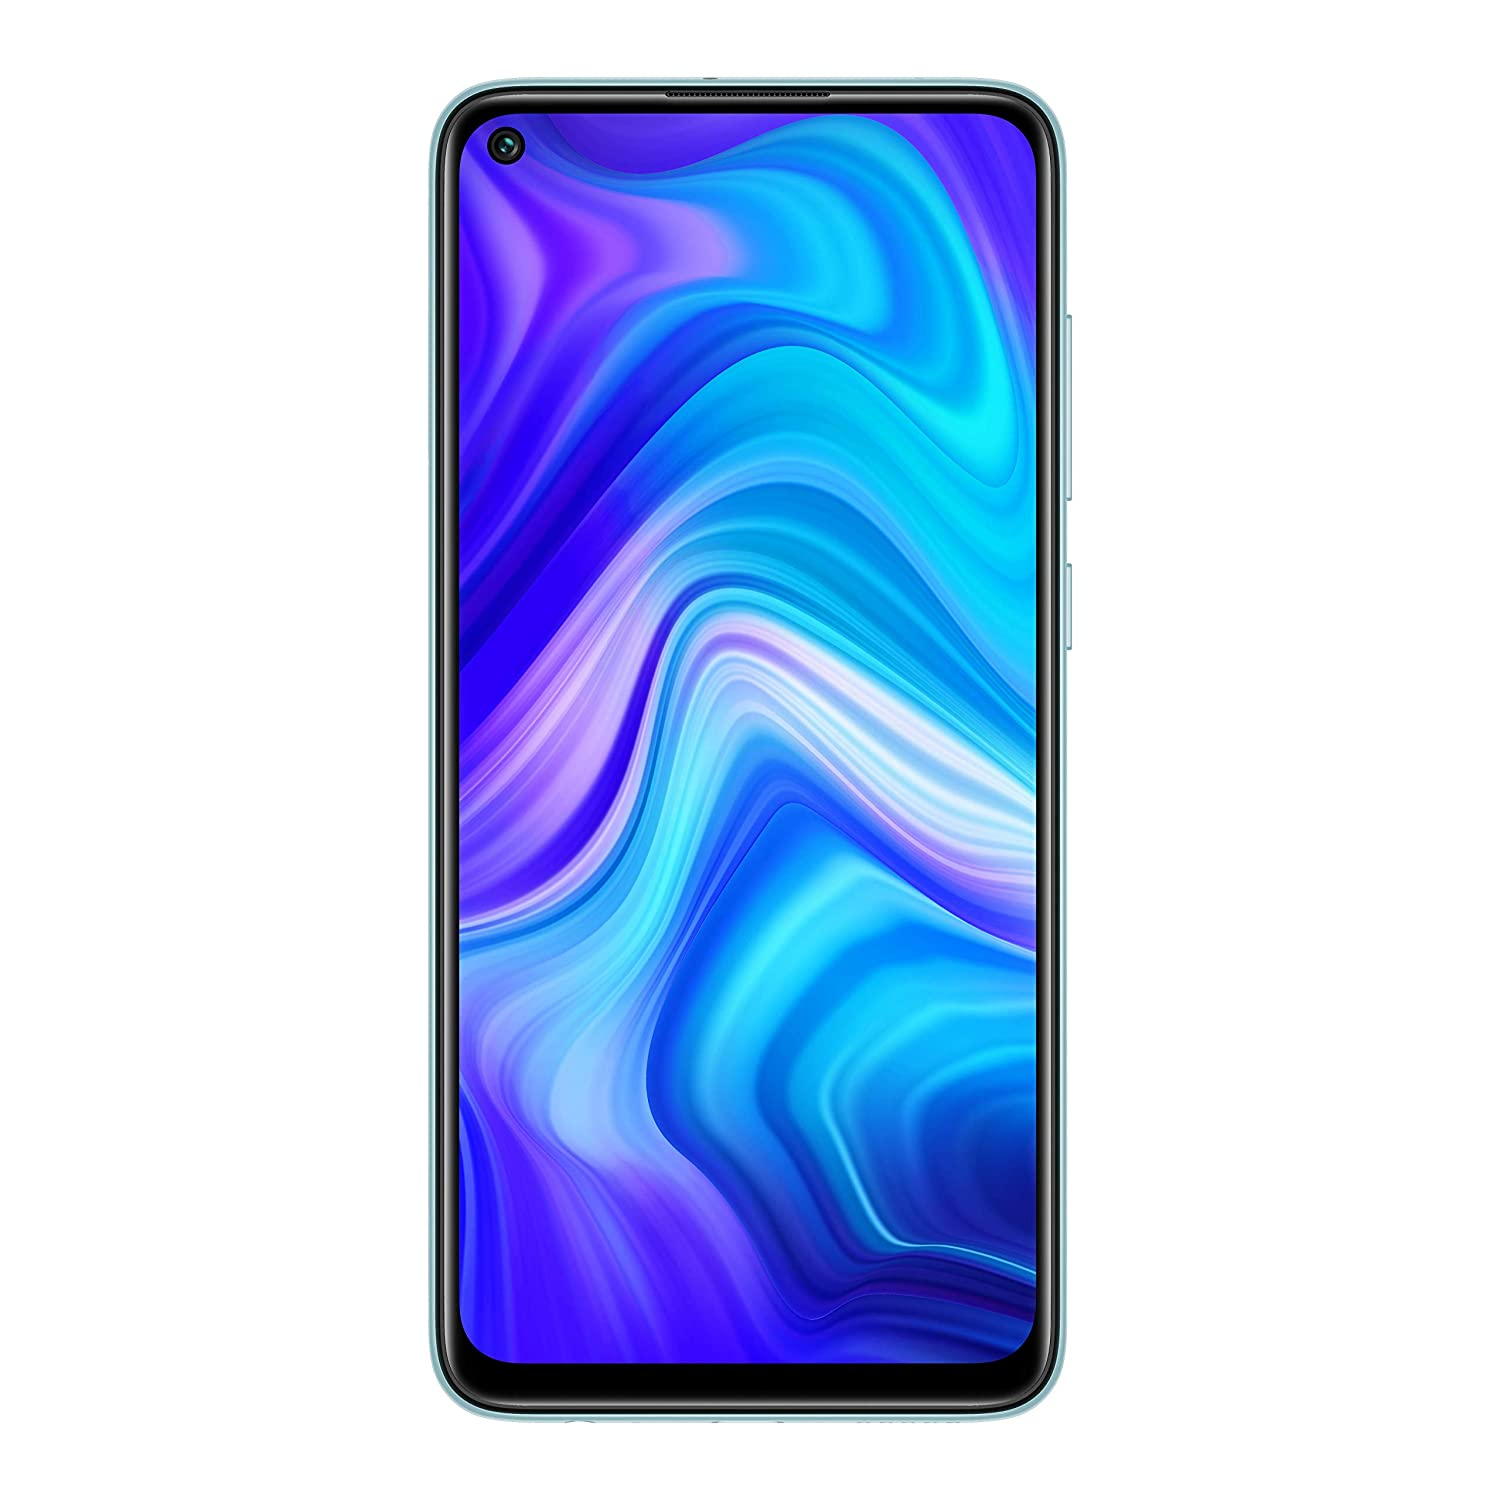 Redmi Note 9 | The Undisputed Champion